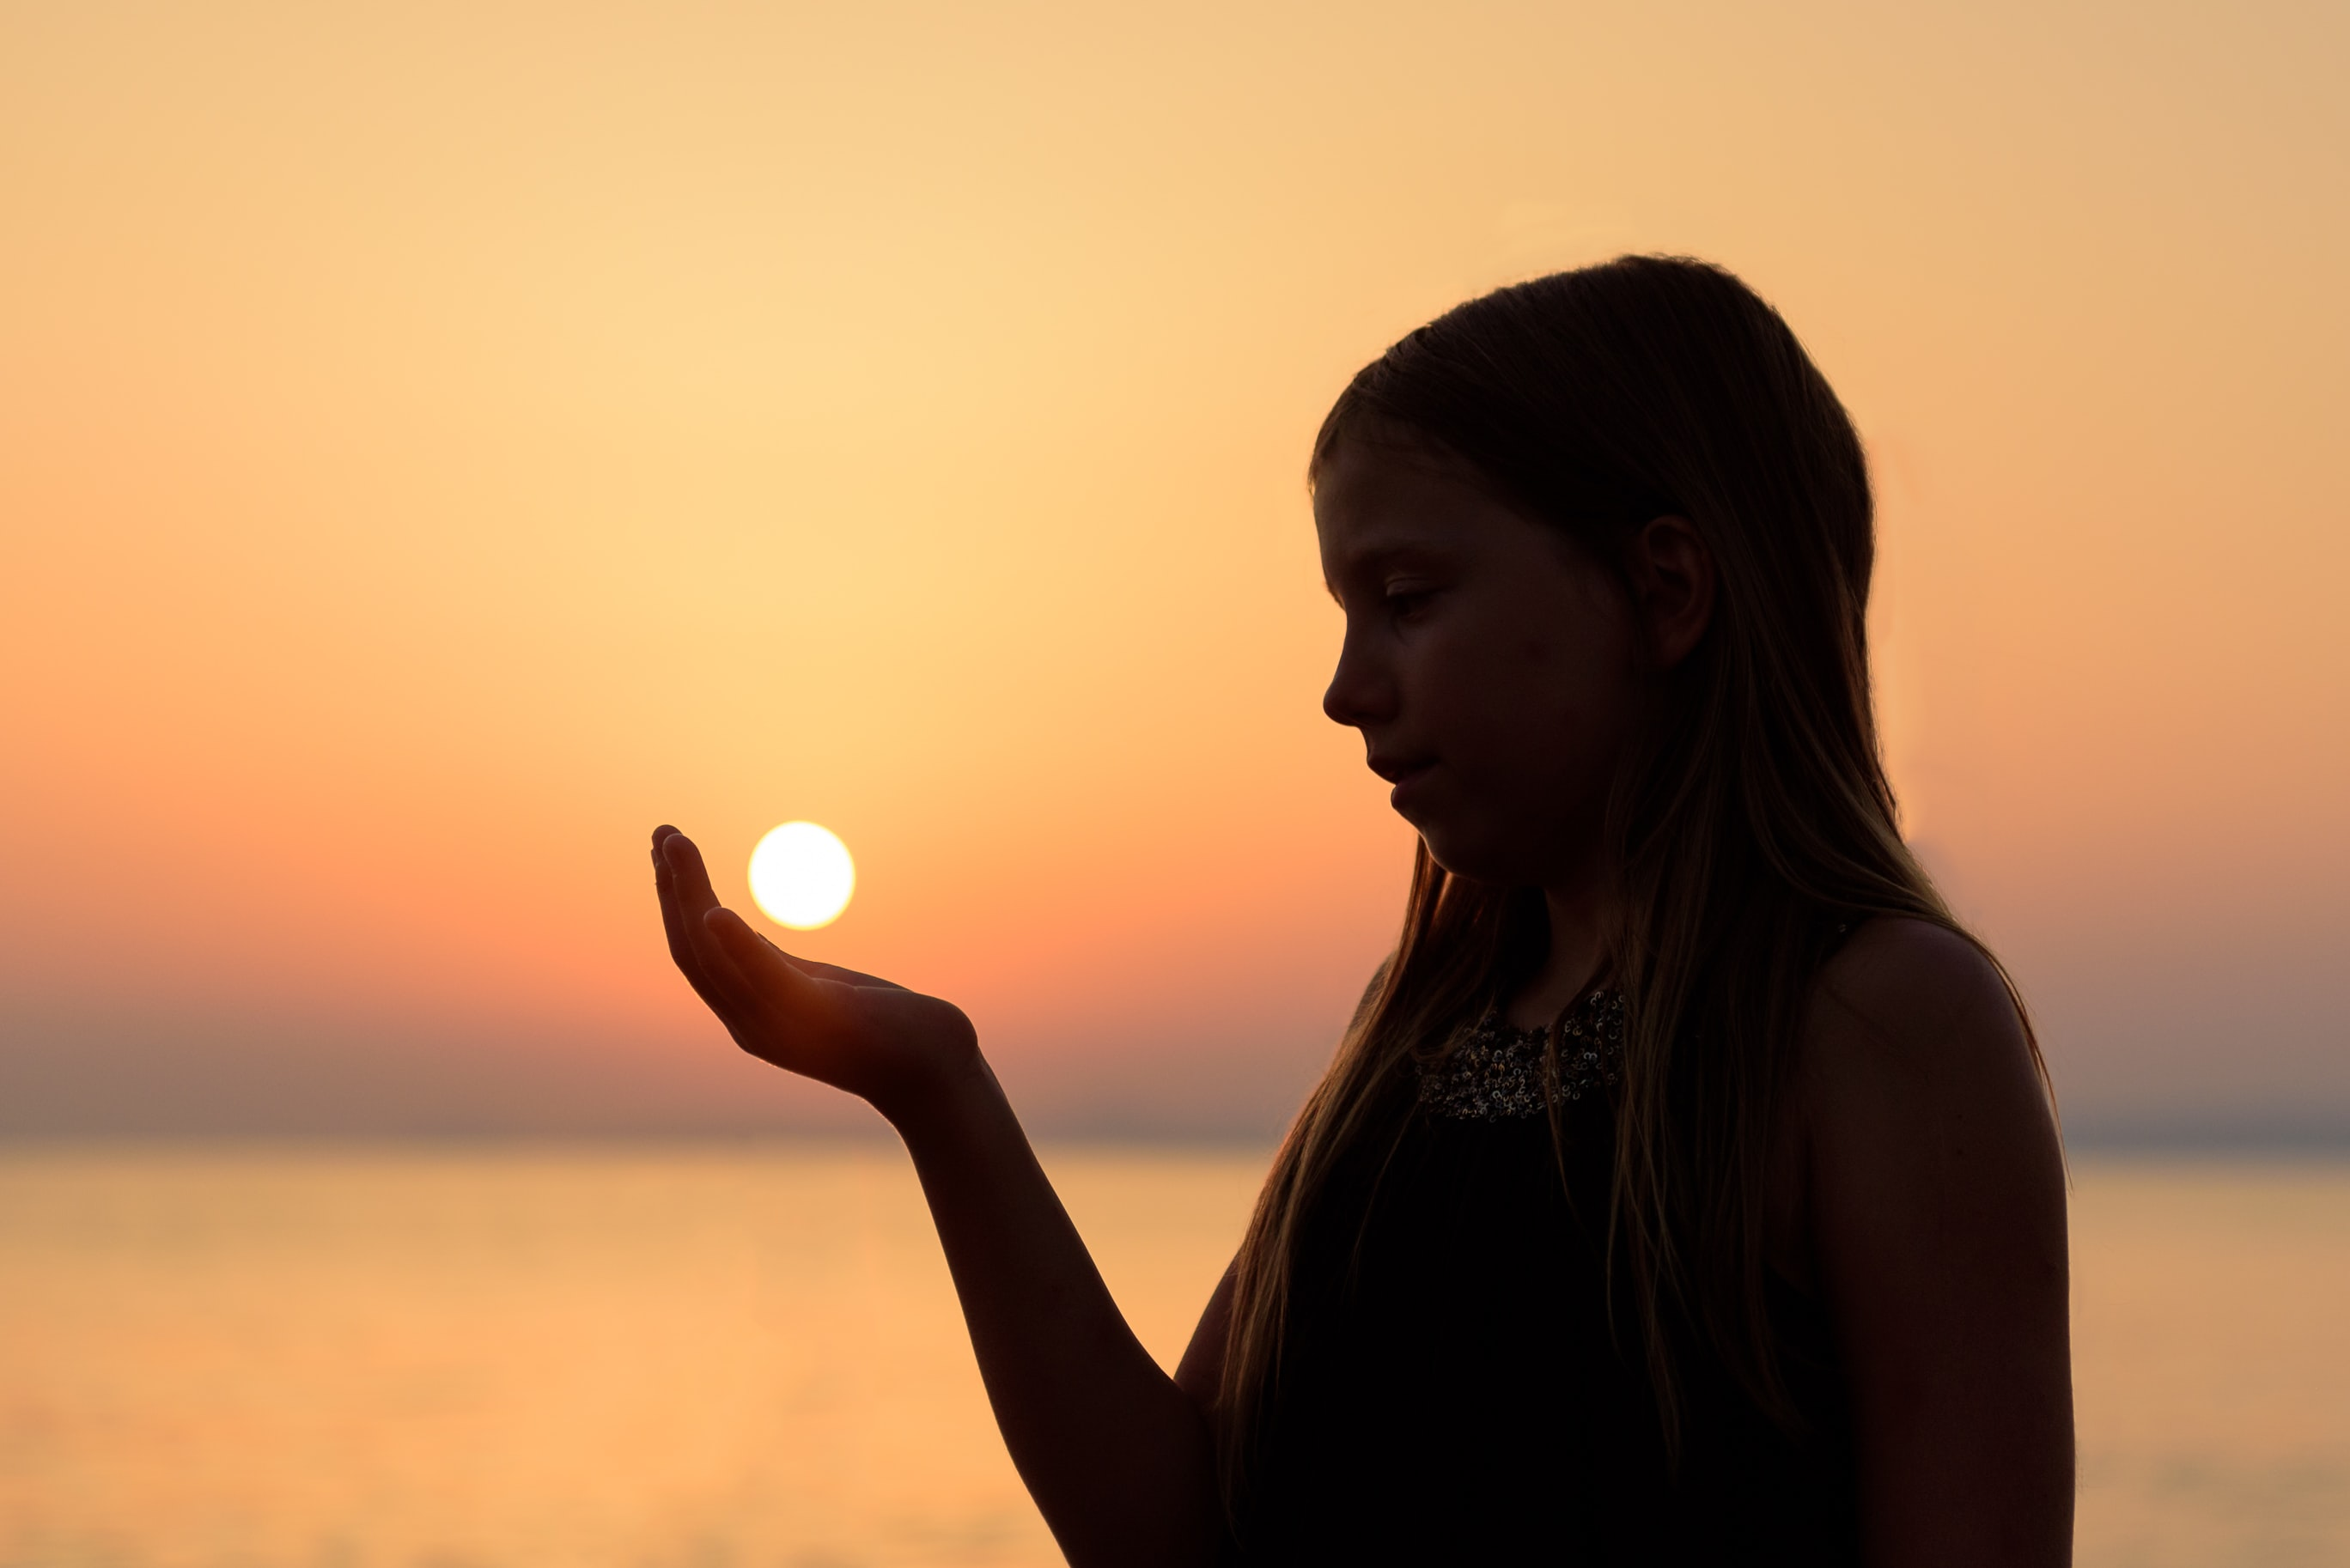 A woman in silhouette appears to hold the setting sun in her hand in Koundouros